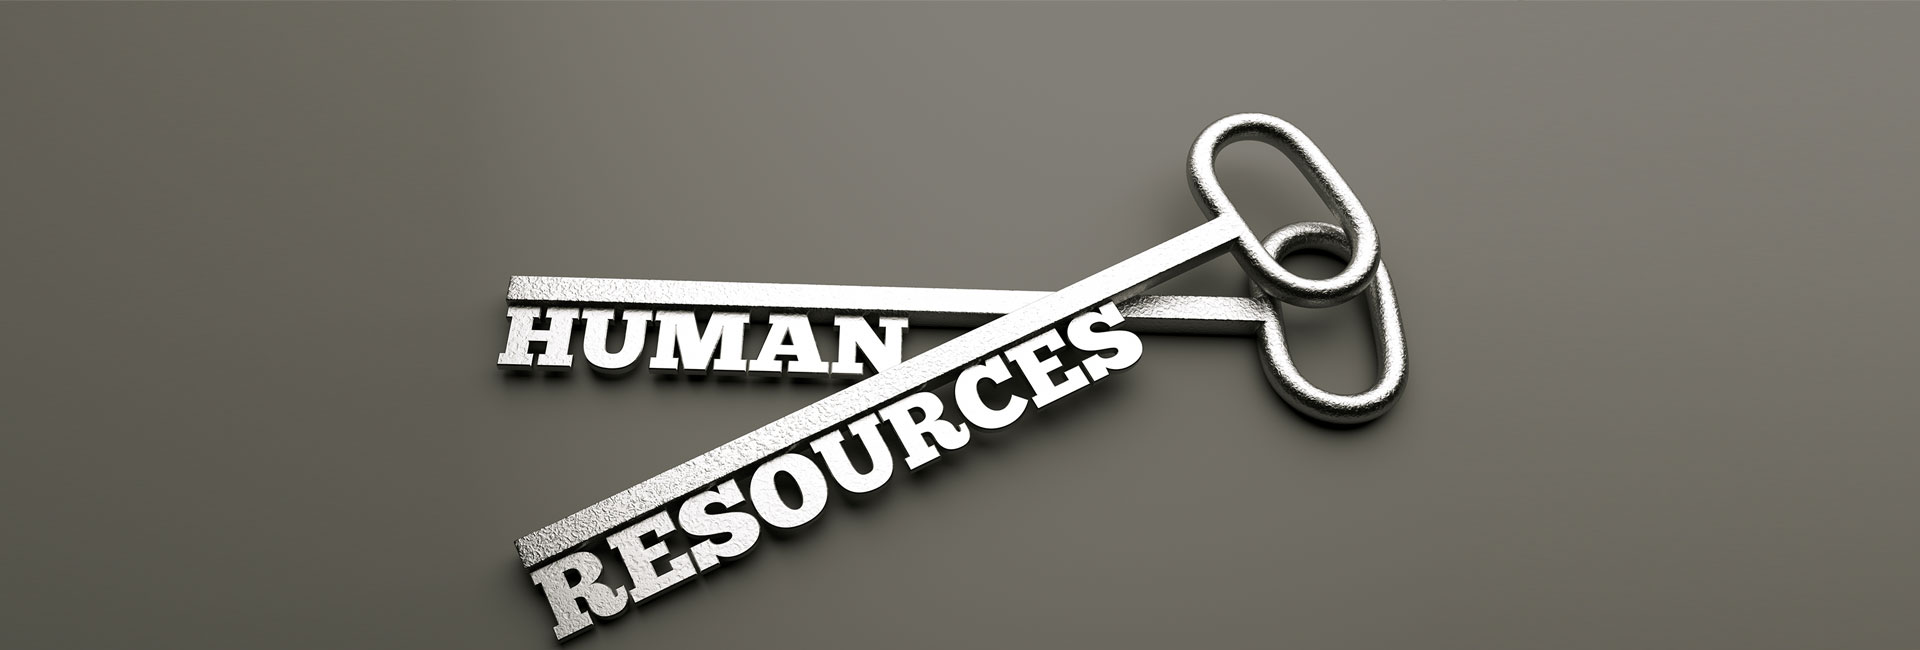 iEverware-Human Resources